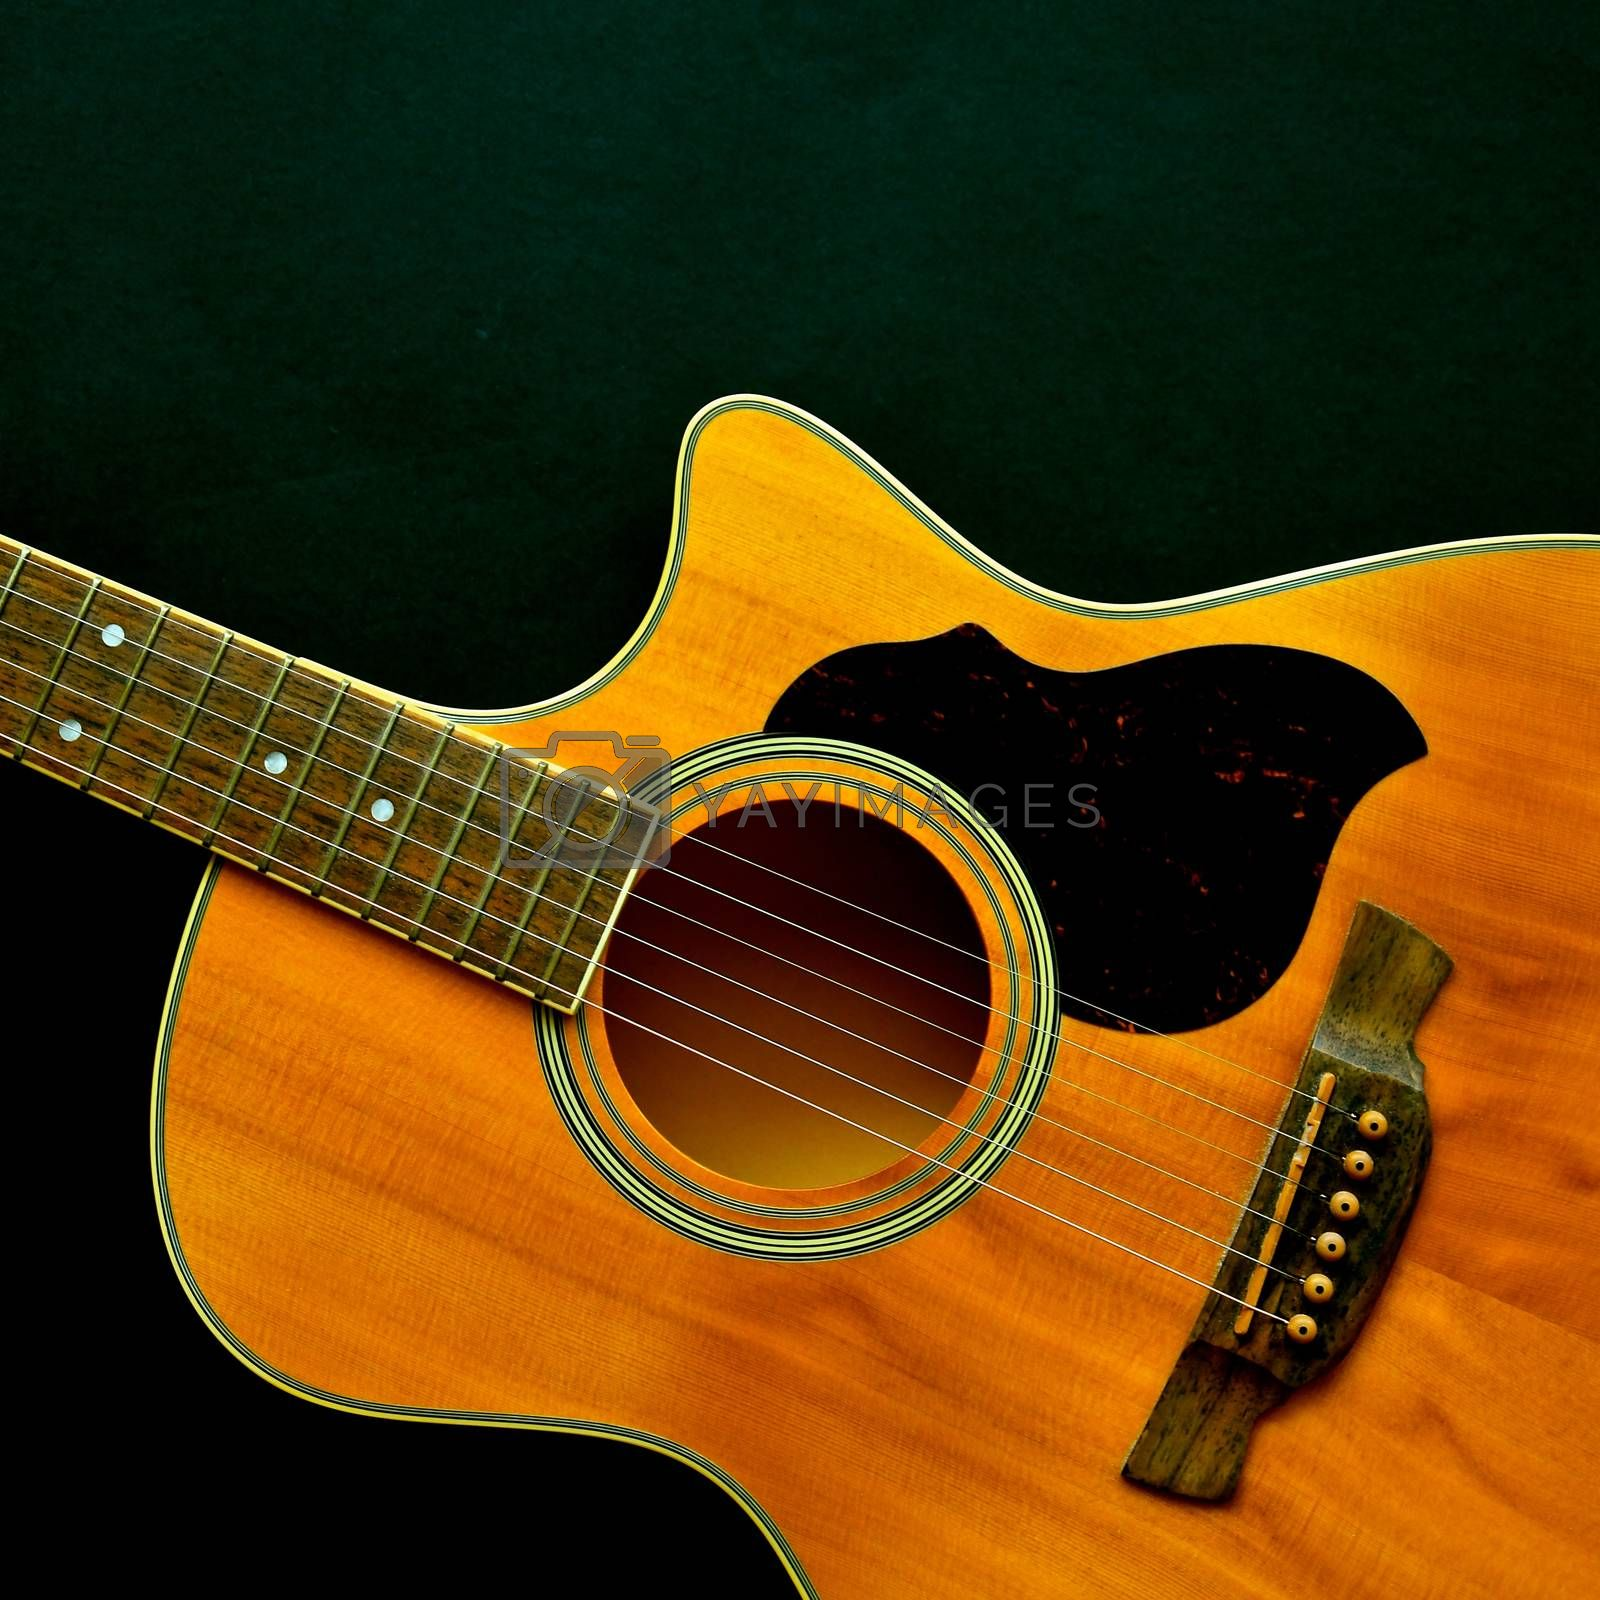 Aerial view of a wooden classical acoustic guitar isolated on a black background.